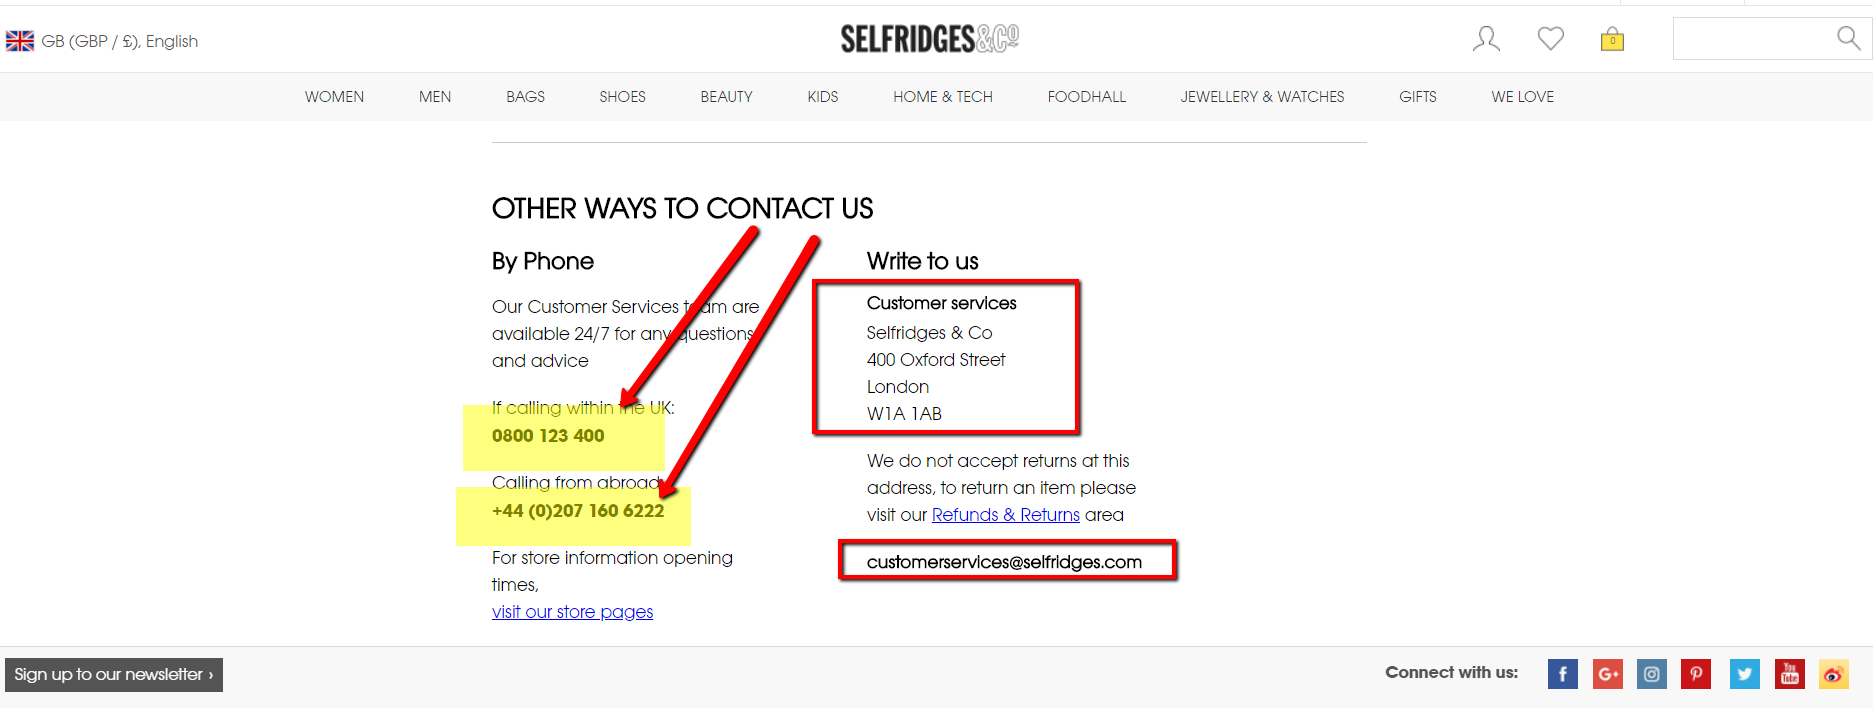 selfridges contact number